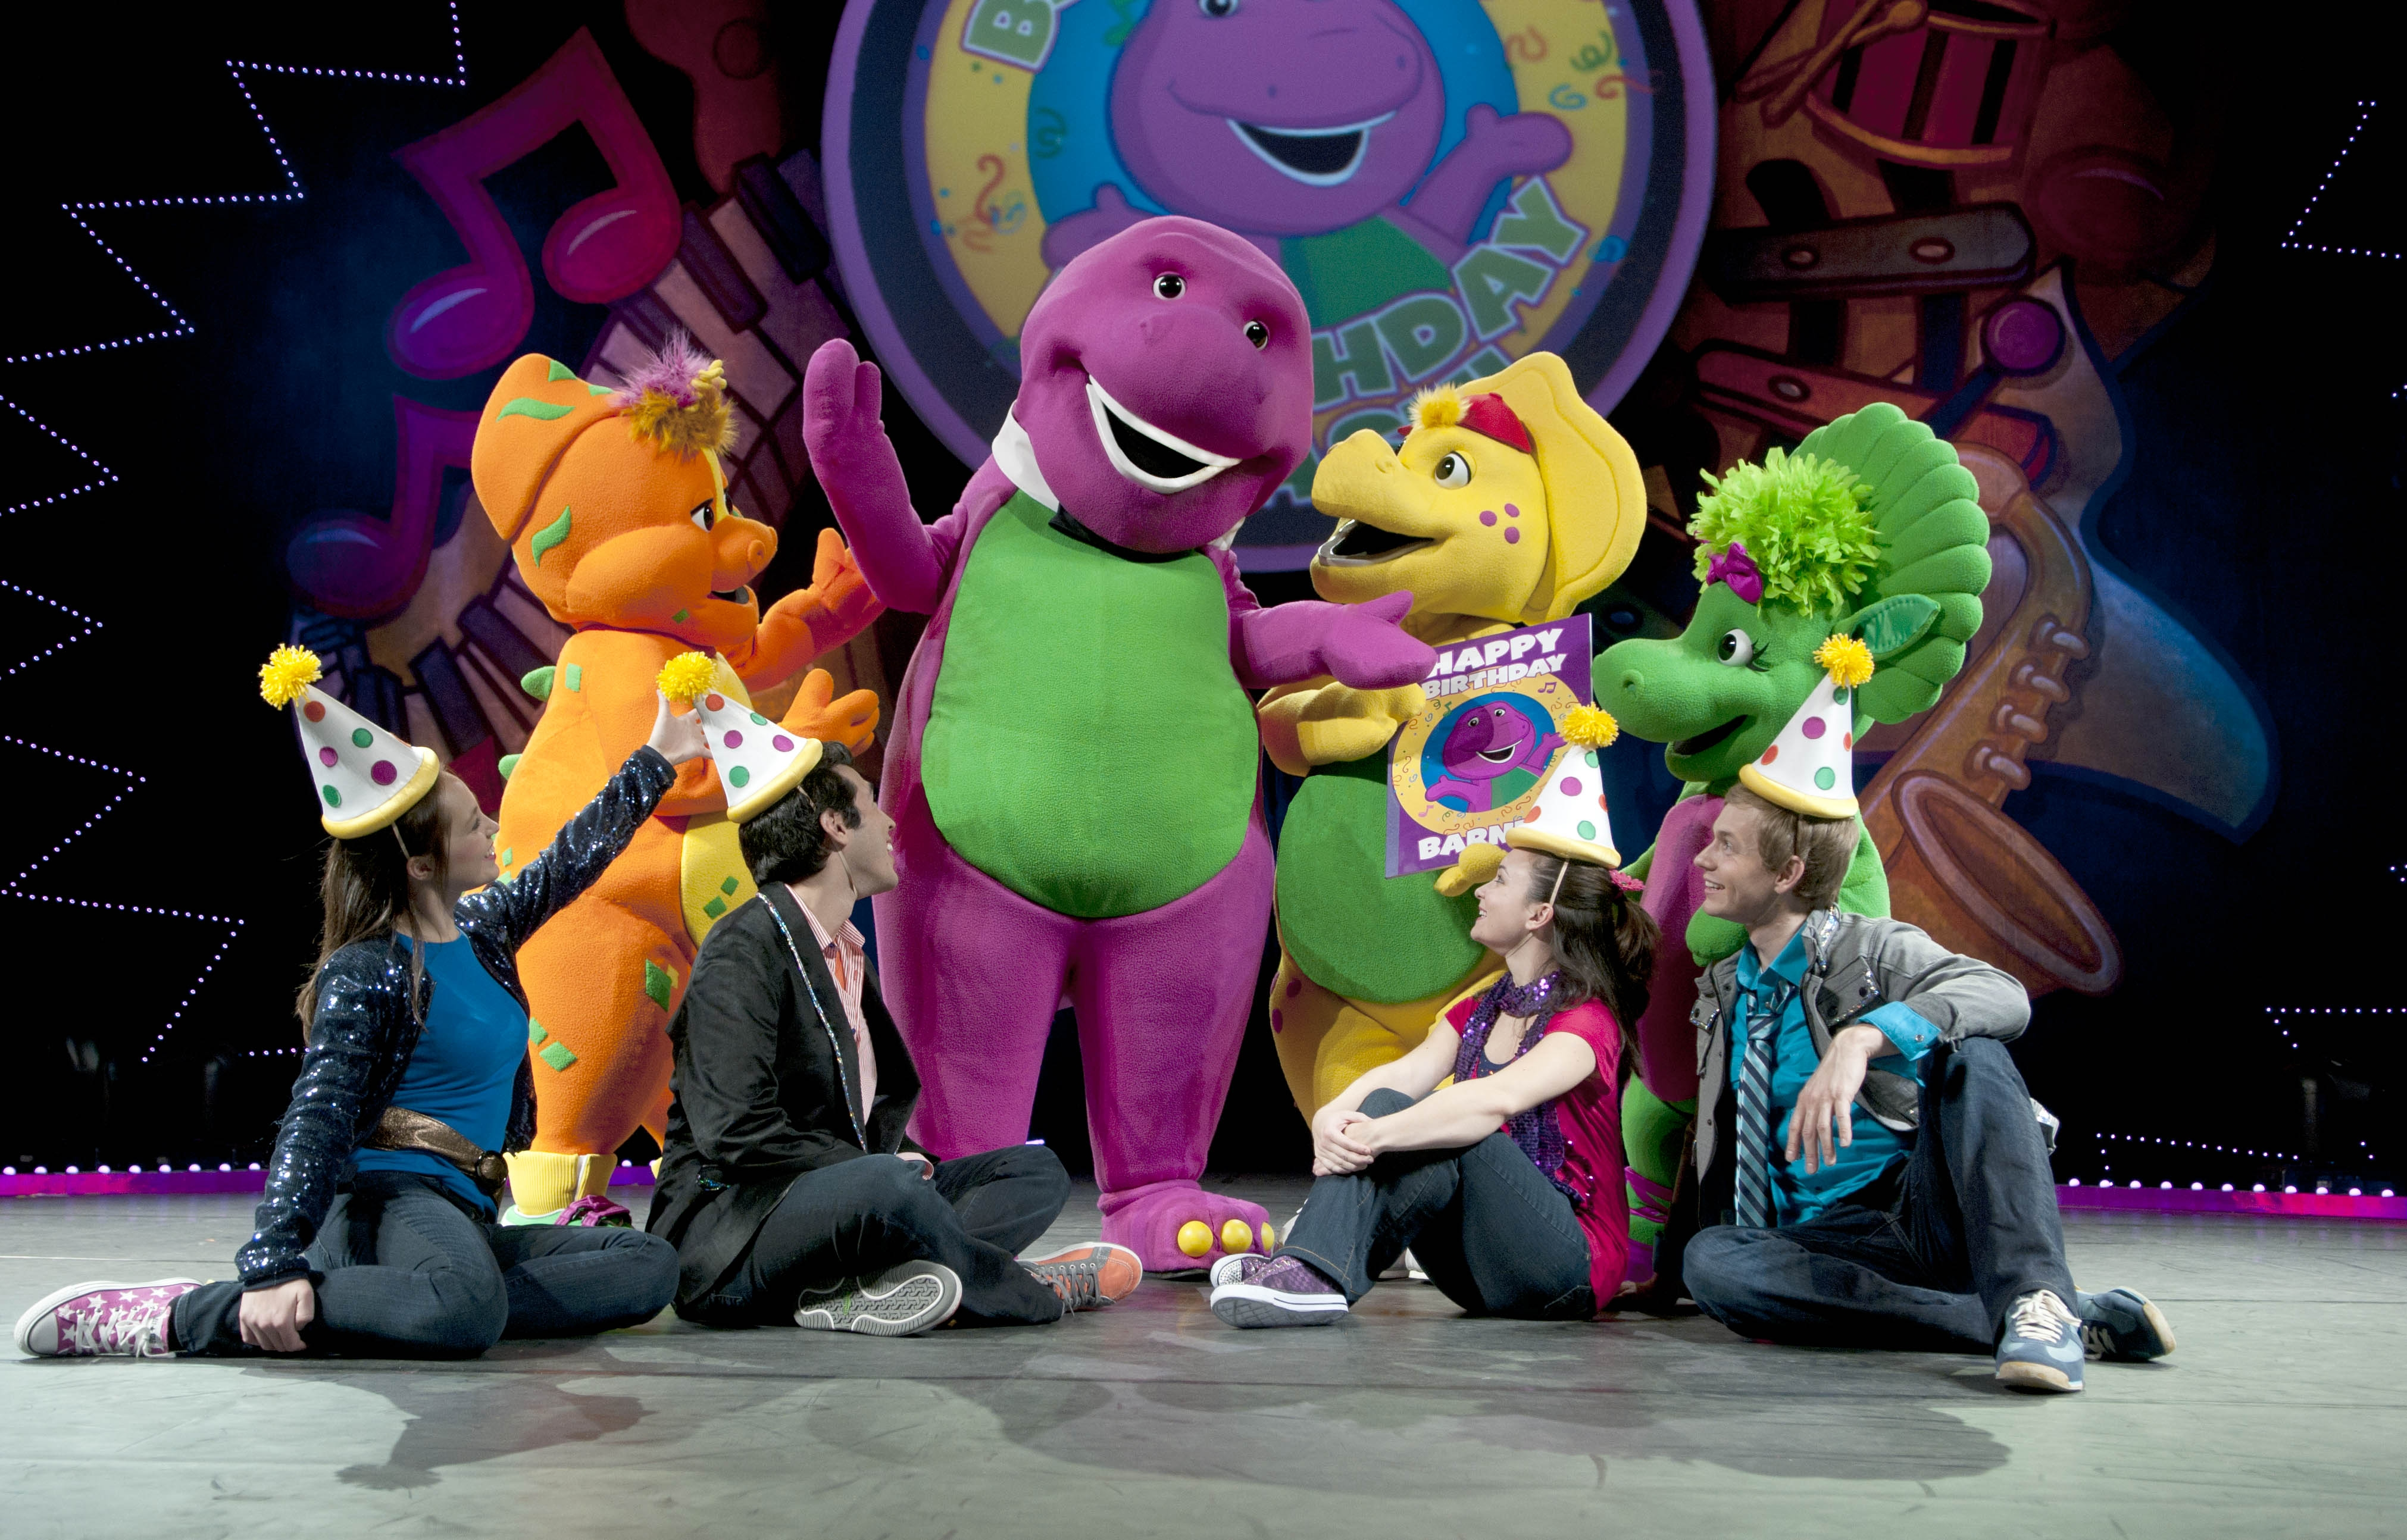 File:Barney Live Birthday Bash.jpg